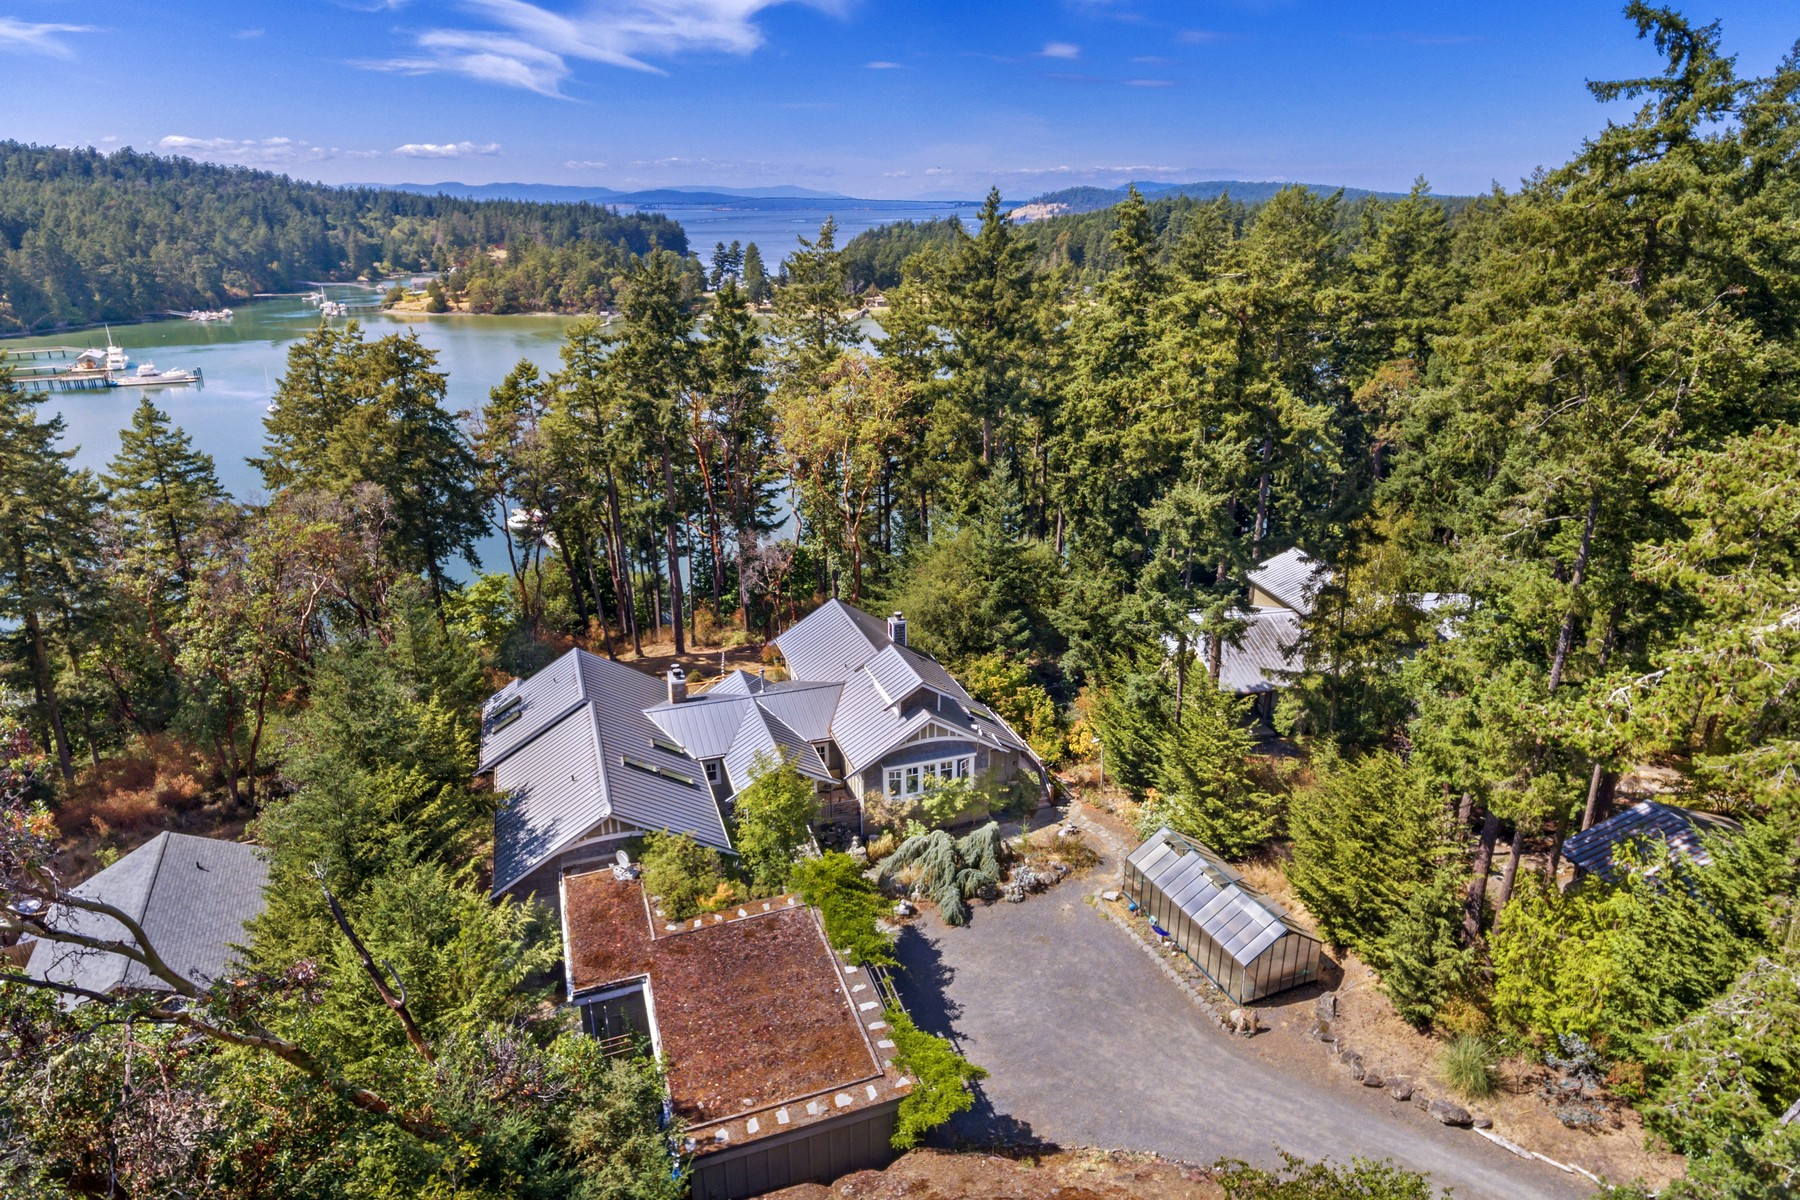 Casa Unifamiliar por un Venta en Welcoming Home with Waterviews on San Juan Island Friday Harbor, Washington 98250 Estados Unidos